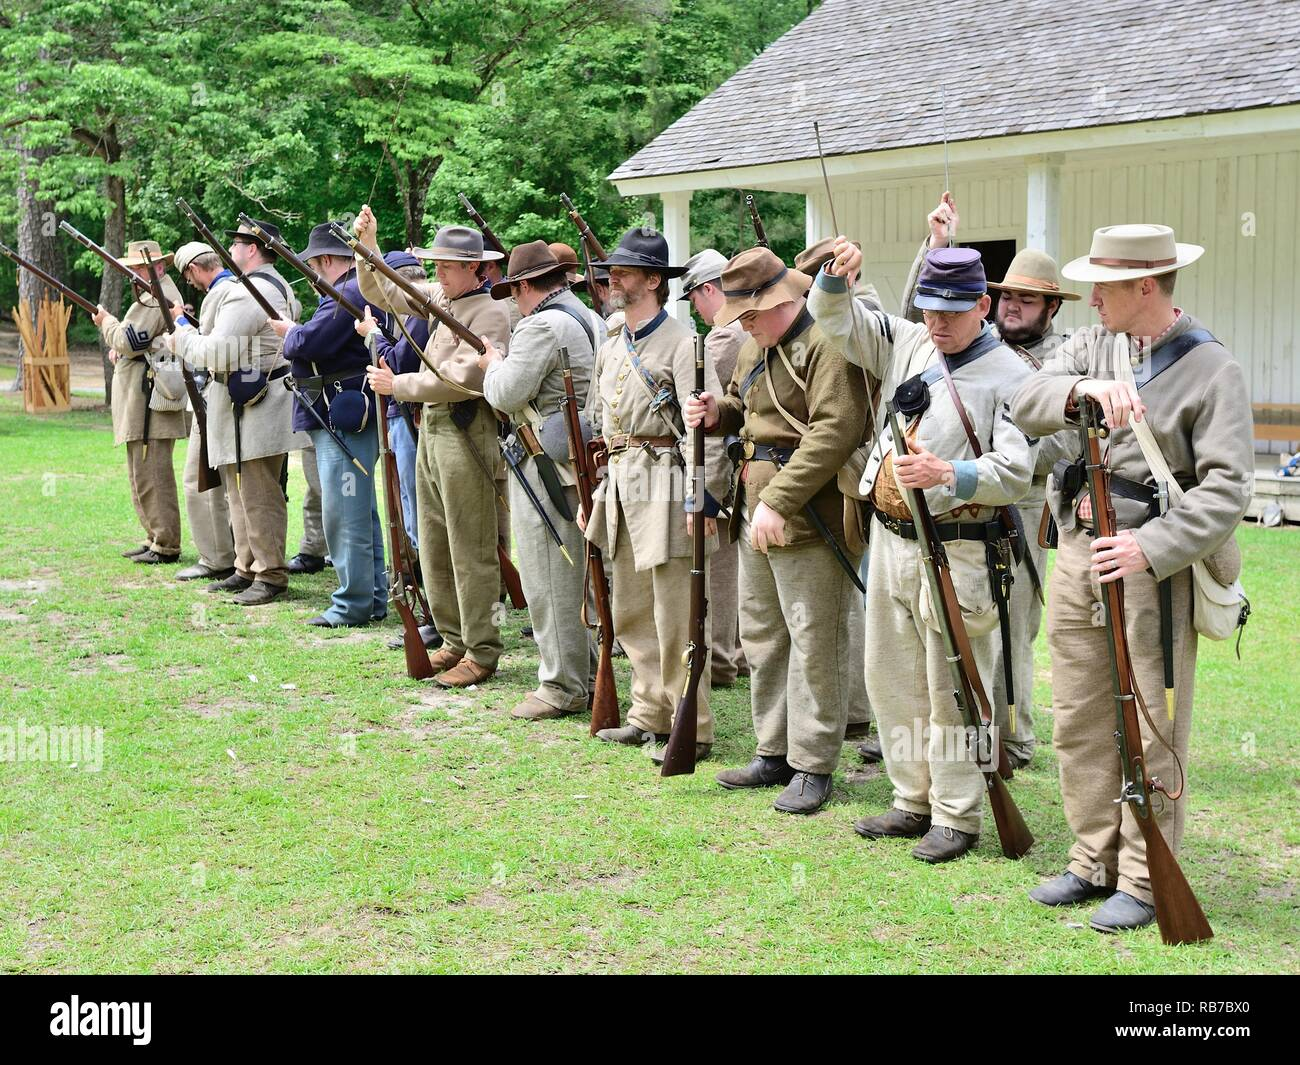 American Civil War reenactment soldiers in Confederate and